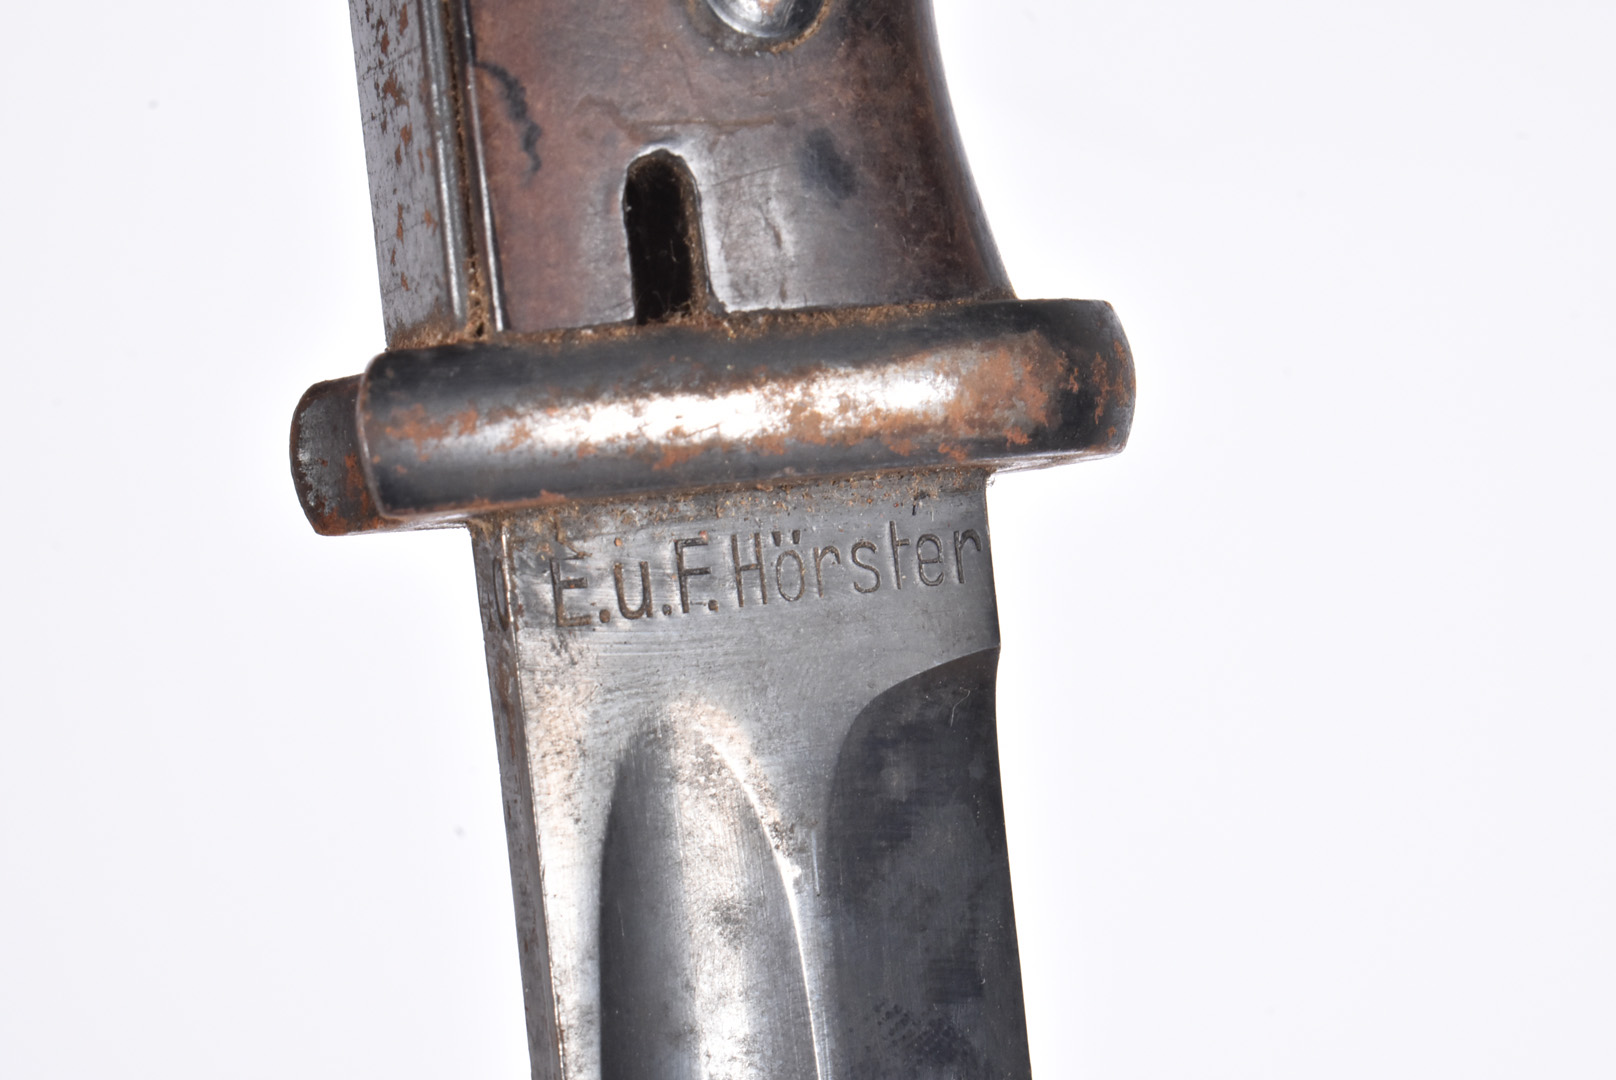 A WWII German K98 bayonet and scabbard by E.U.F Horster, dated 1940, with serial 5376, complete with - Image 2 of 8